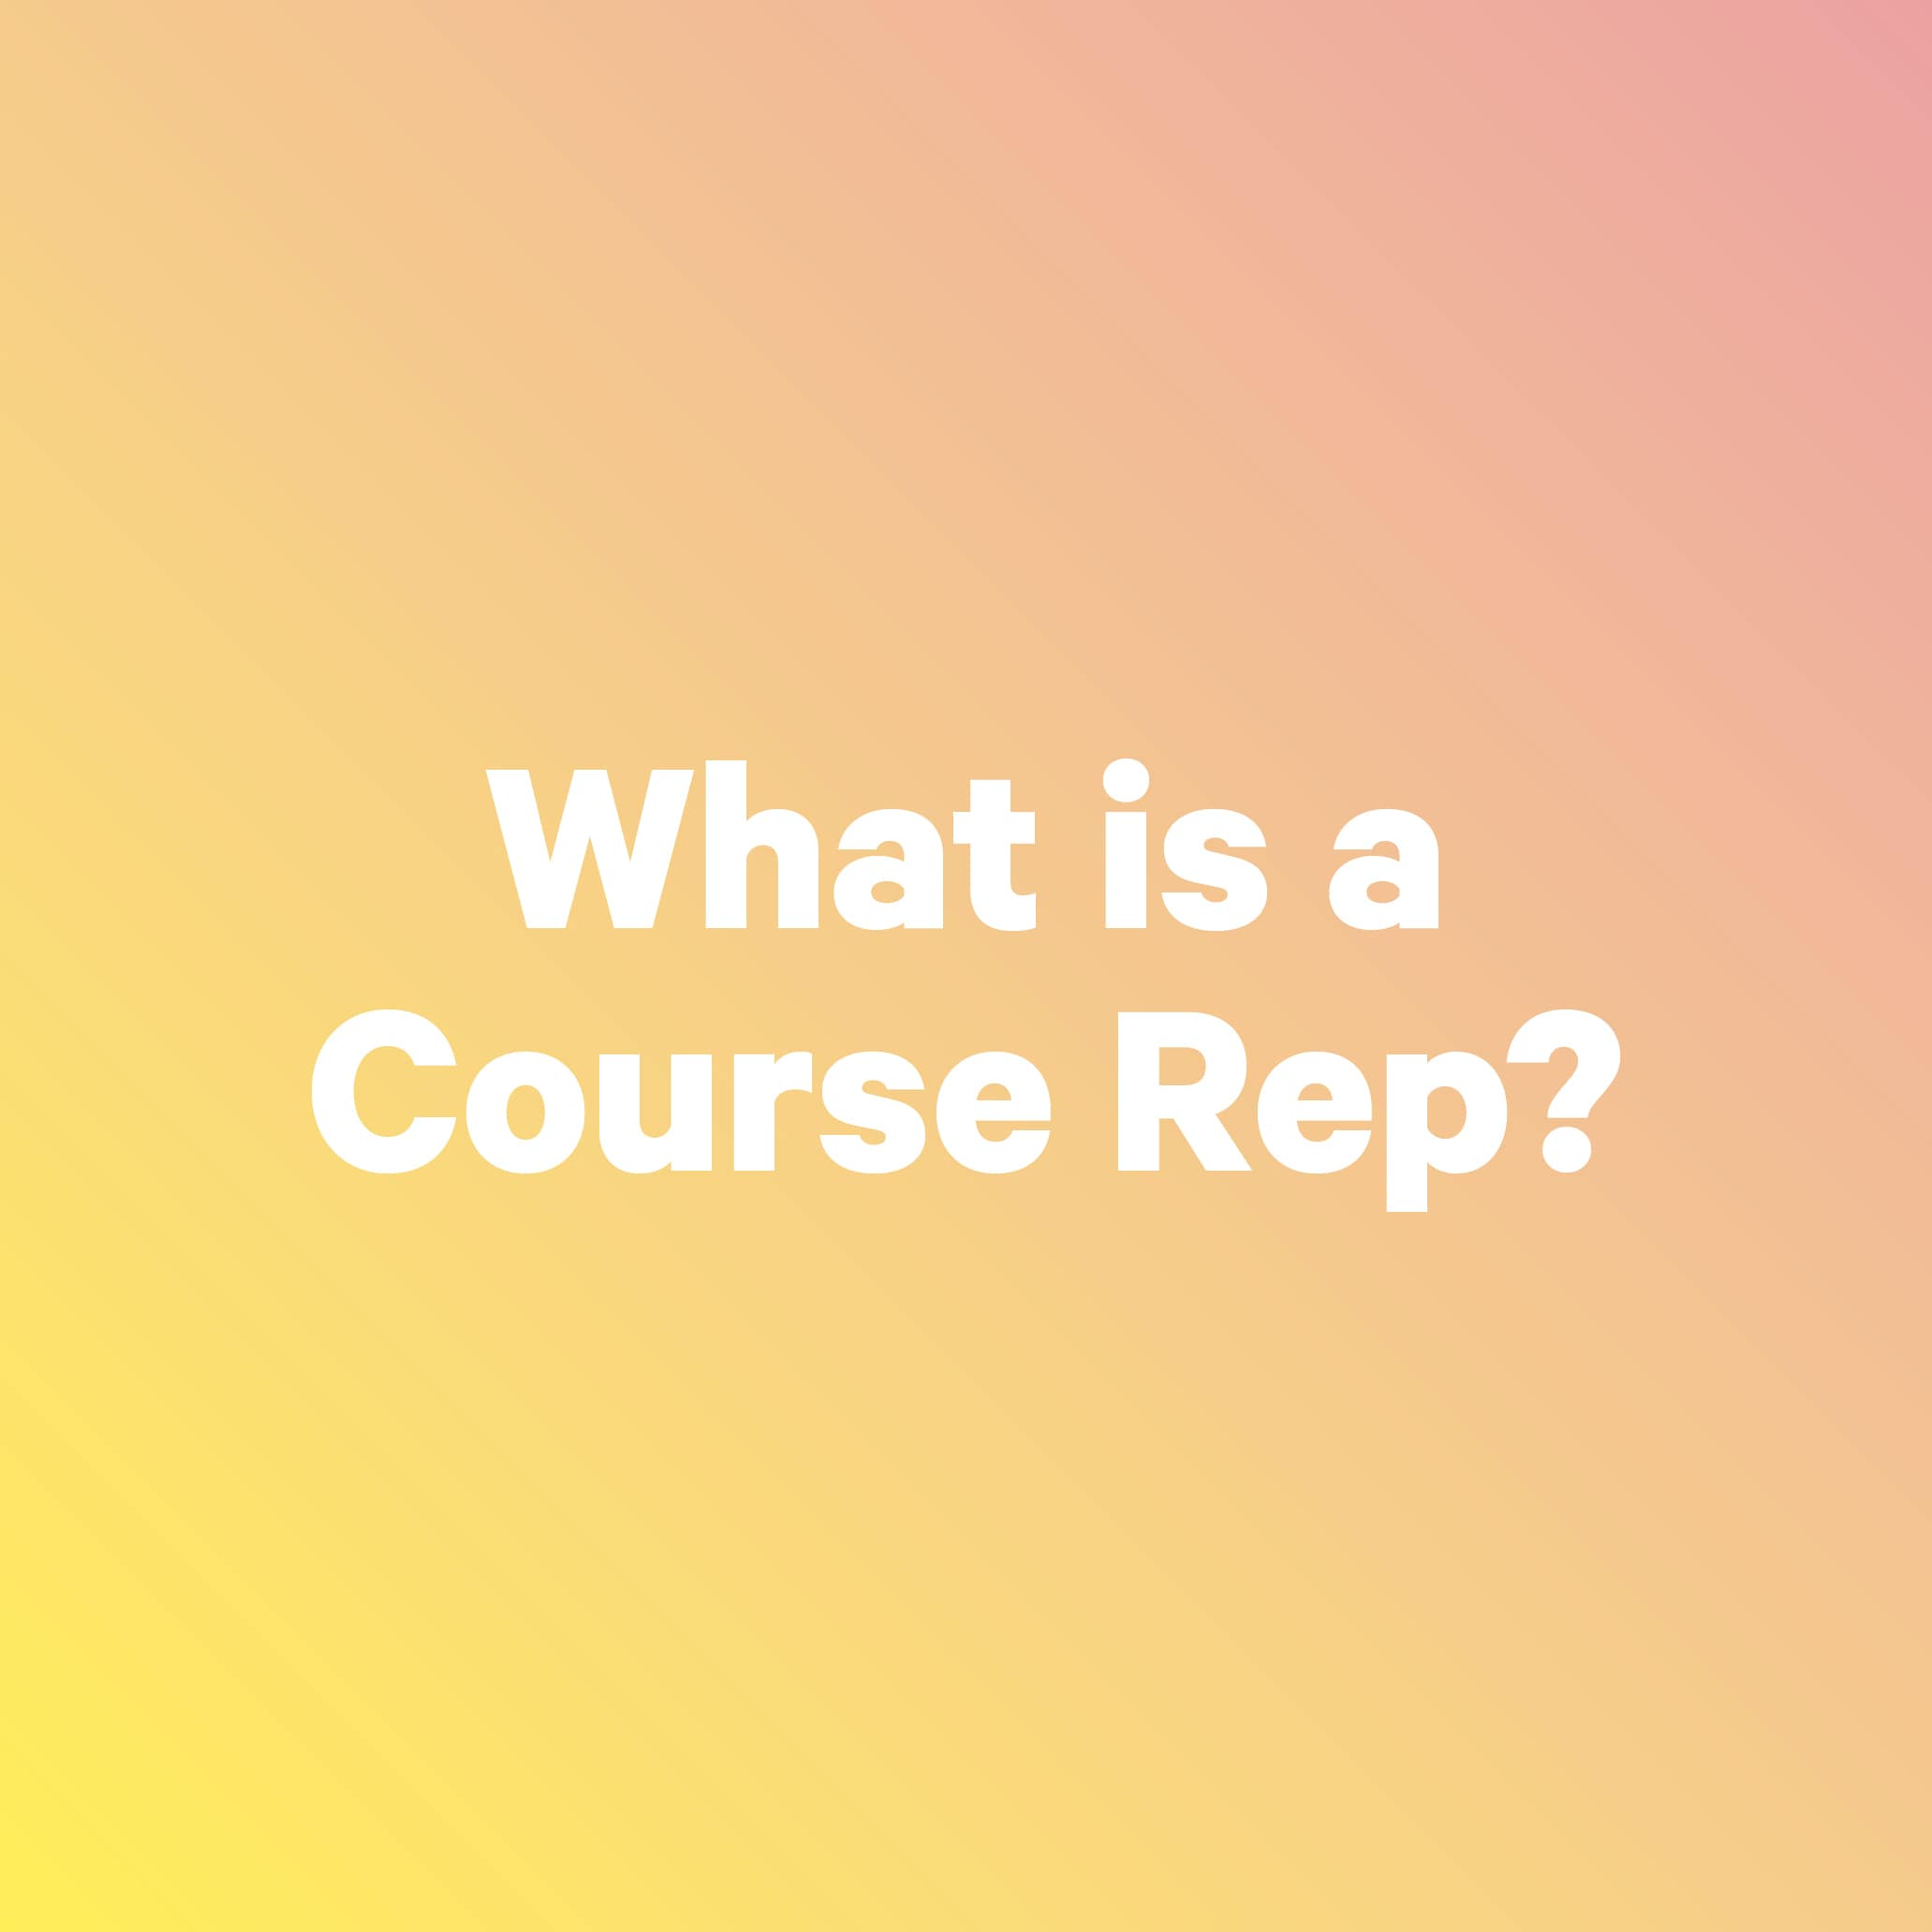 What is a course rep